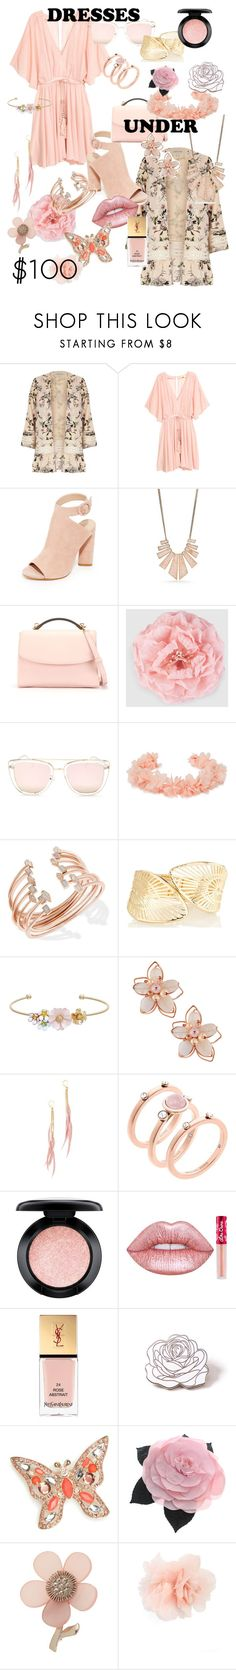 """Bohemian Pink Flow"" by hipsterchic100 ❤ liked on Polyvore featuring River Island, Kendall + Kylie, New Directions, Cynthia Rowley, Gucci, Quay, AURA Headpieces, Kendra Scott, LC Lauren Conrad and NAKAMOL"